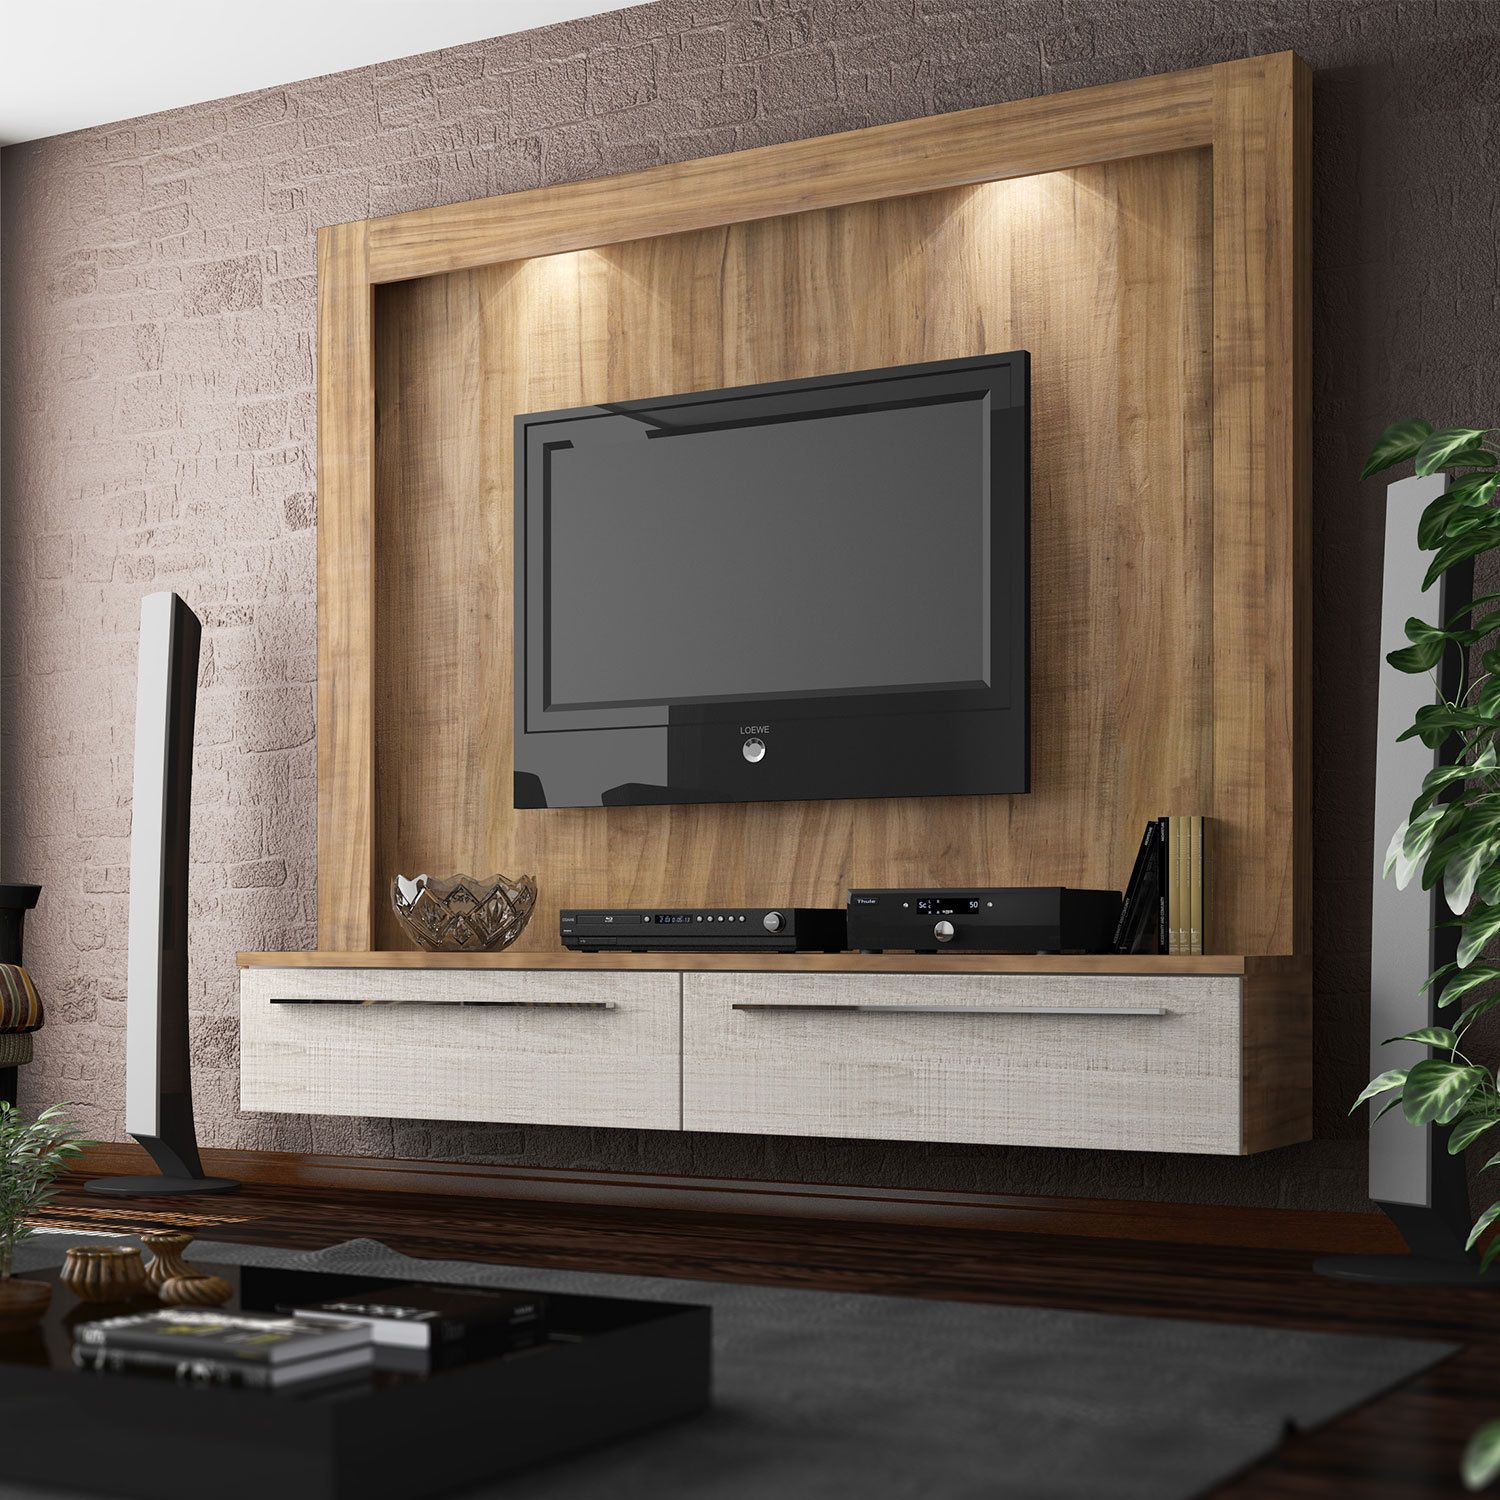 Pin by anwar on Things to do | Pinterest | Tv walls, Tv wall decor ...